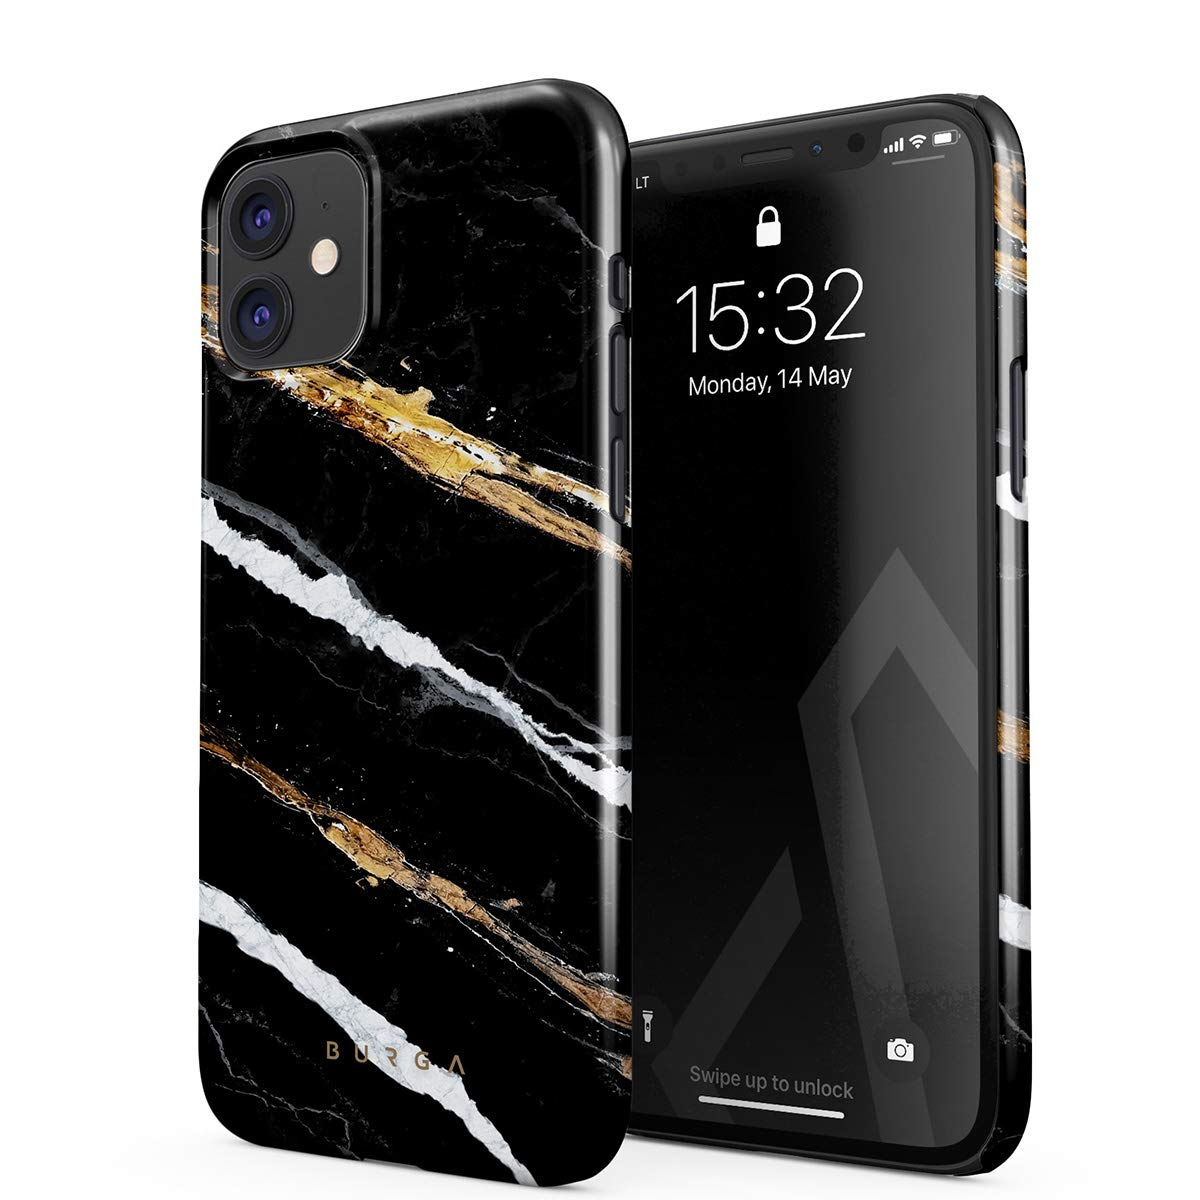 BURGA Phone Case Compatible with iPhone 11 - Golden Clues Black and Gold Onyx Stone Marble Cute Case for Girls Thin Design Durable Hard Shell Plastic Protective Case